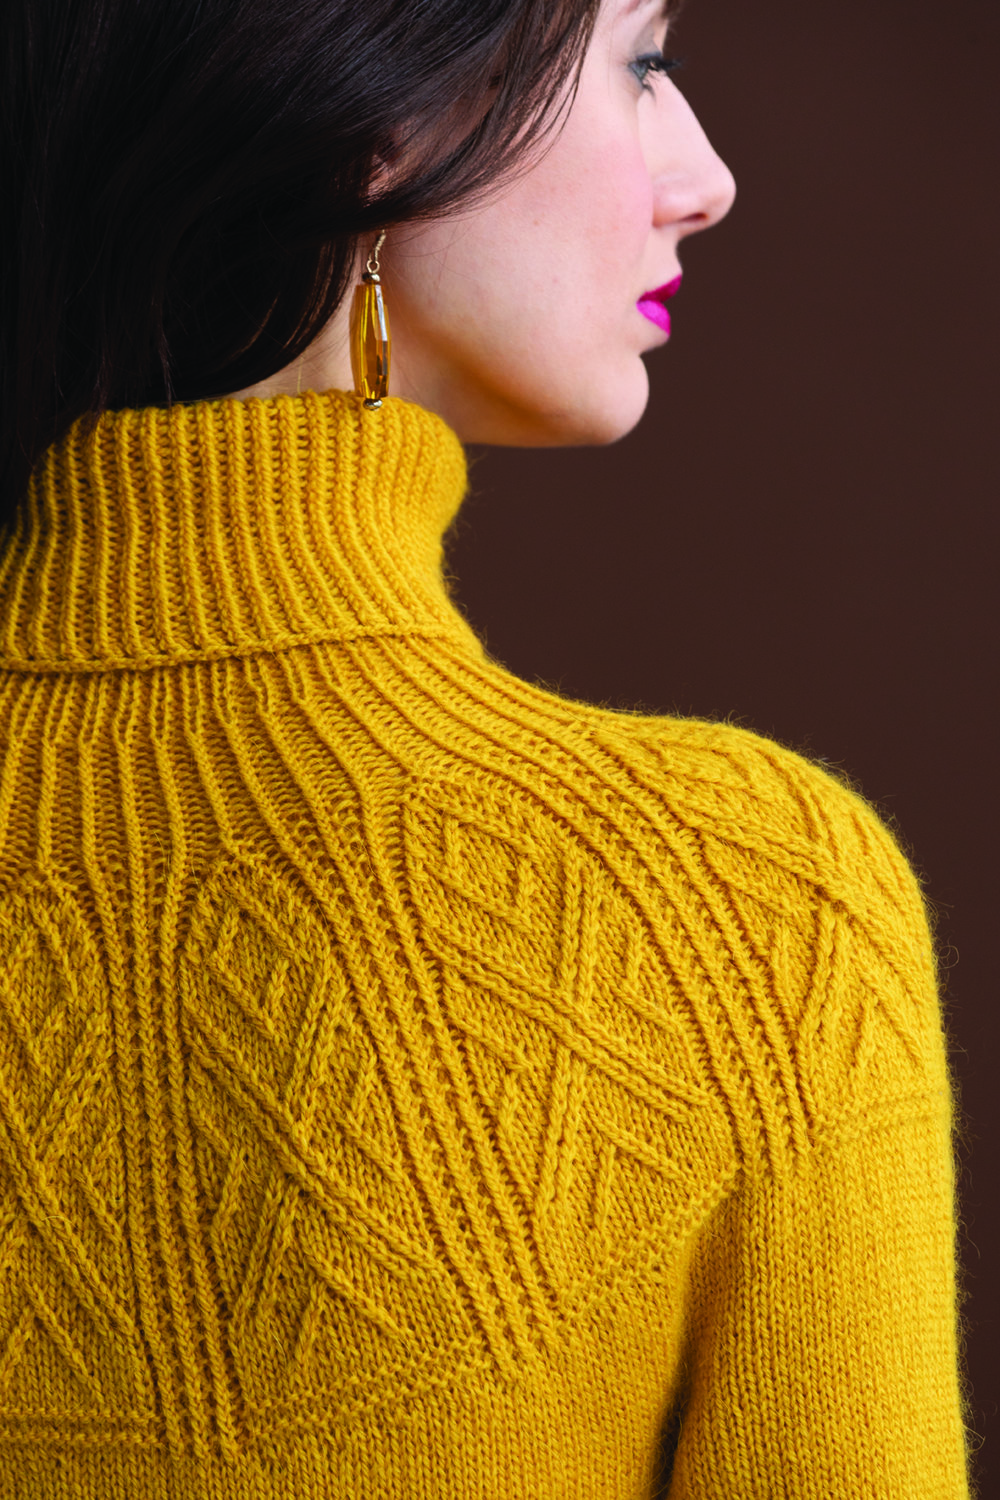 Yoked Pullover Vogue Knitting Early Fall, Norah Gaughan